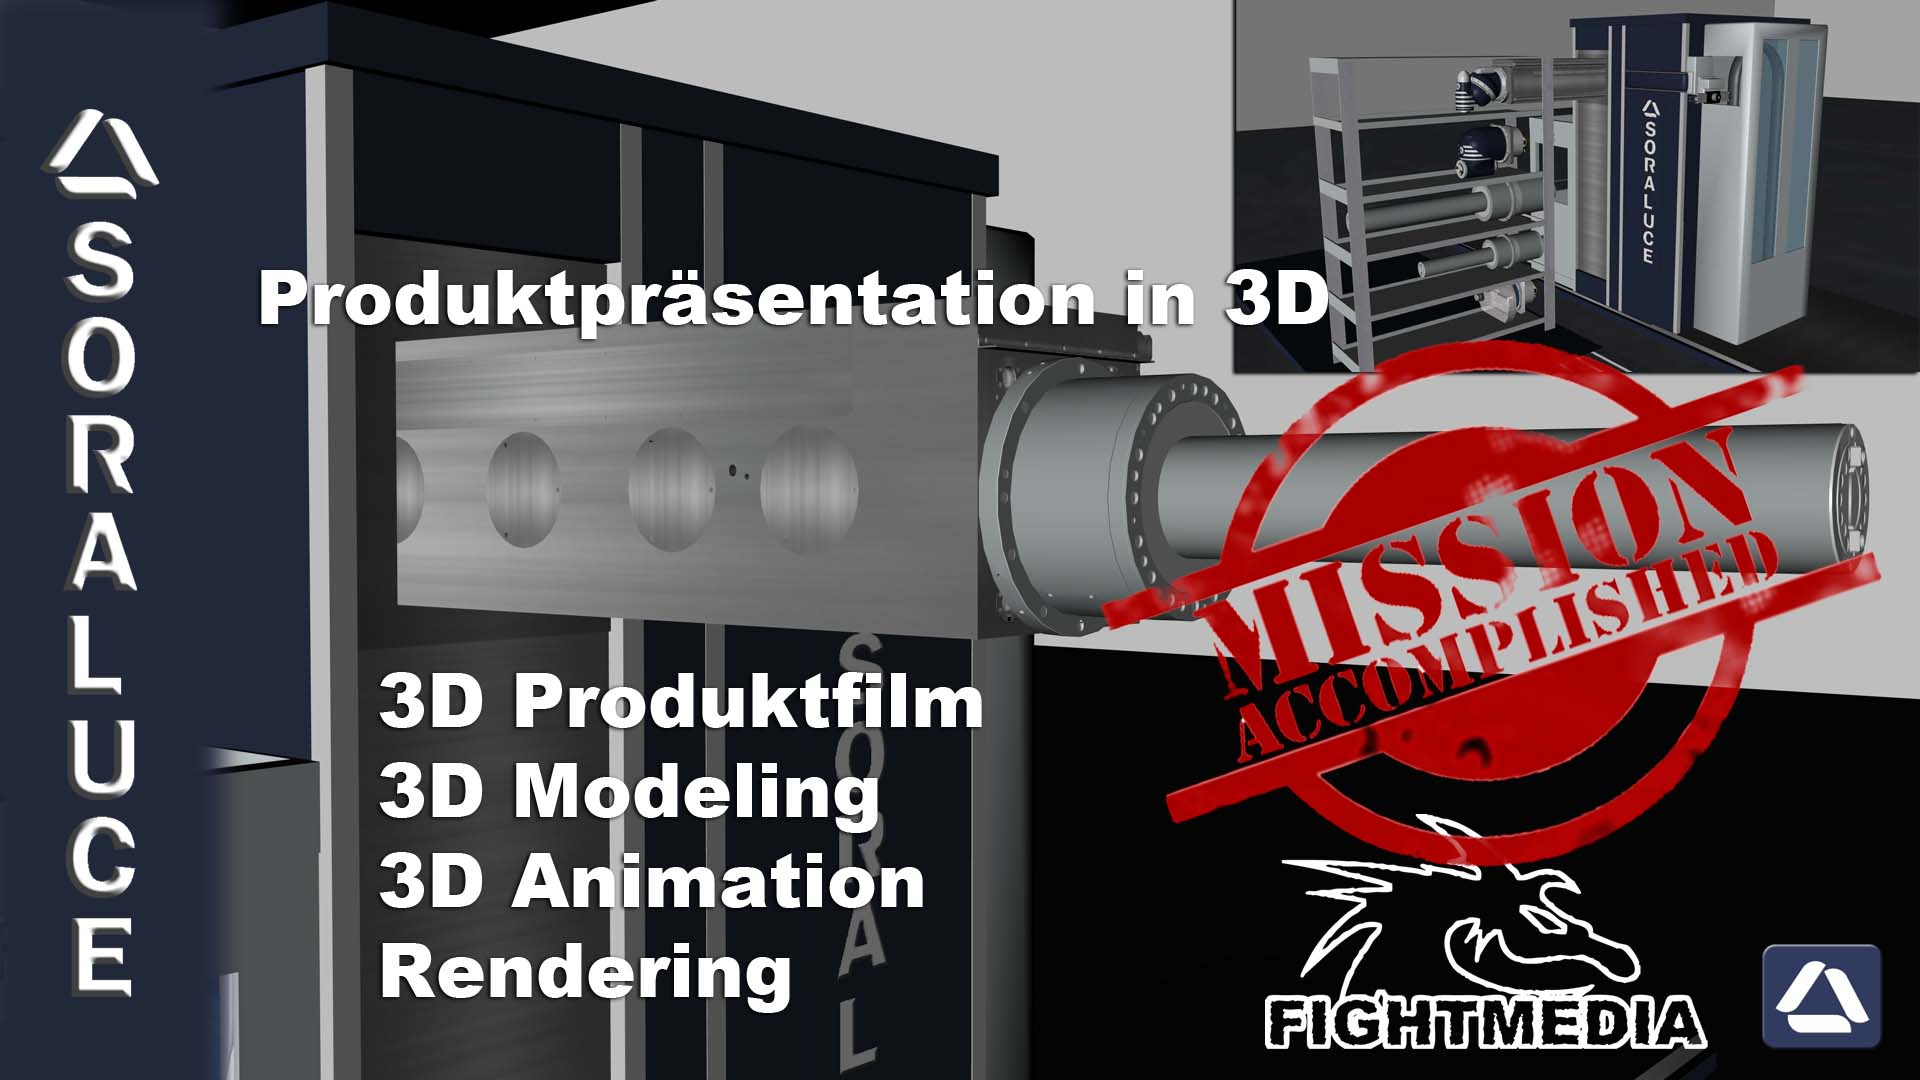 Produktpräsentation in 3D